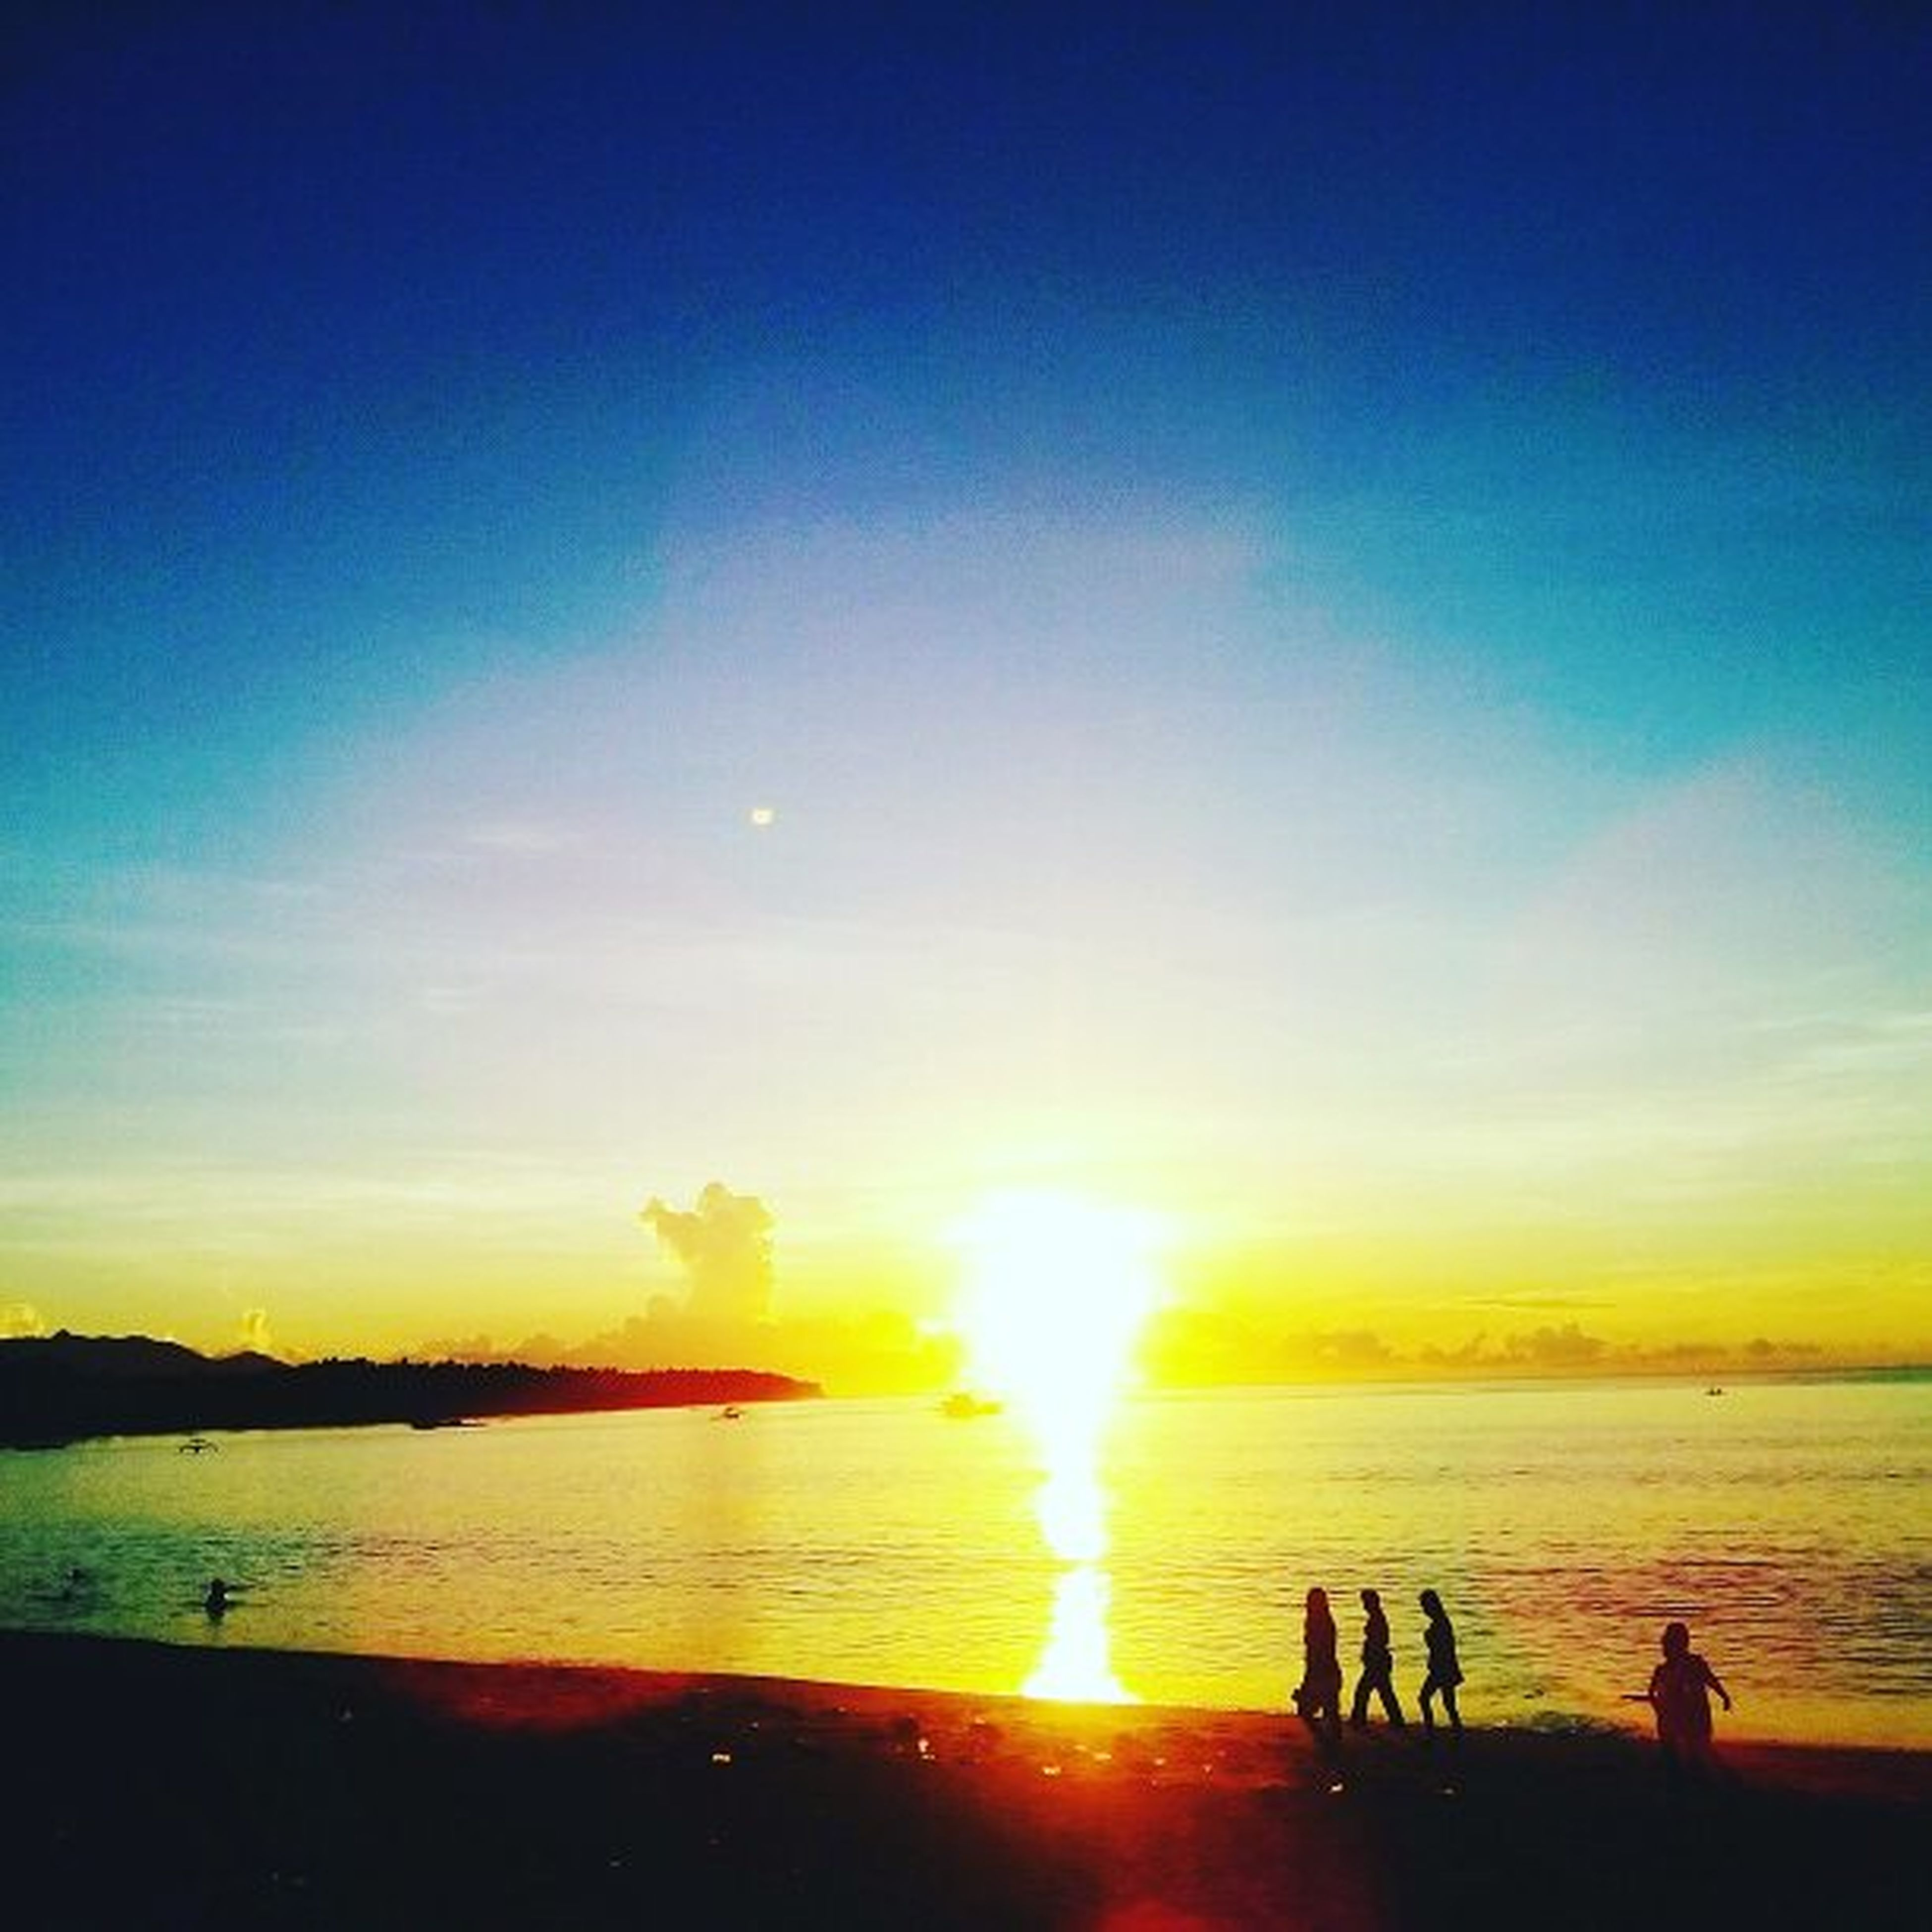 sunset, silhouette, sea, water, real people, leisure activity, beauty in nature, sky, nature, beach, men, lifestyles, scenics, vacations, sun, horizon over water, sunlight, outdoors, women, weekend activities, togetherness, enjoyment, wave, large group of people, day, people, adult